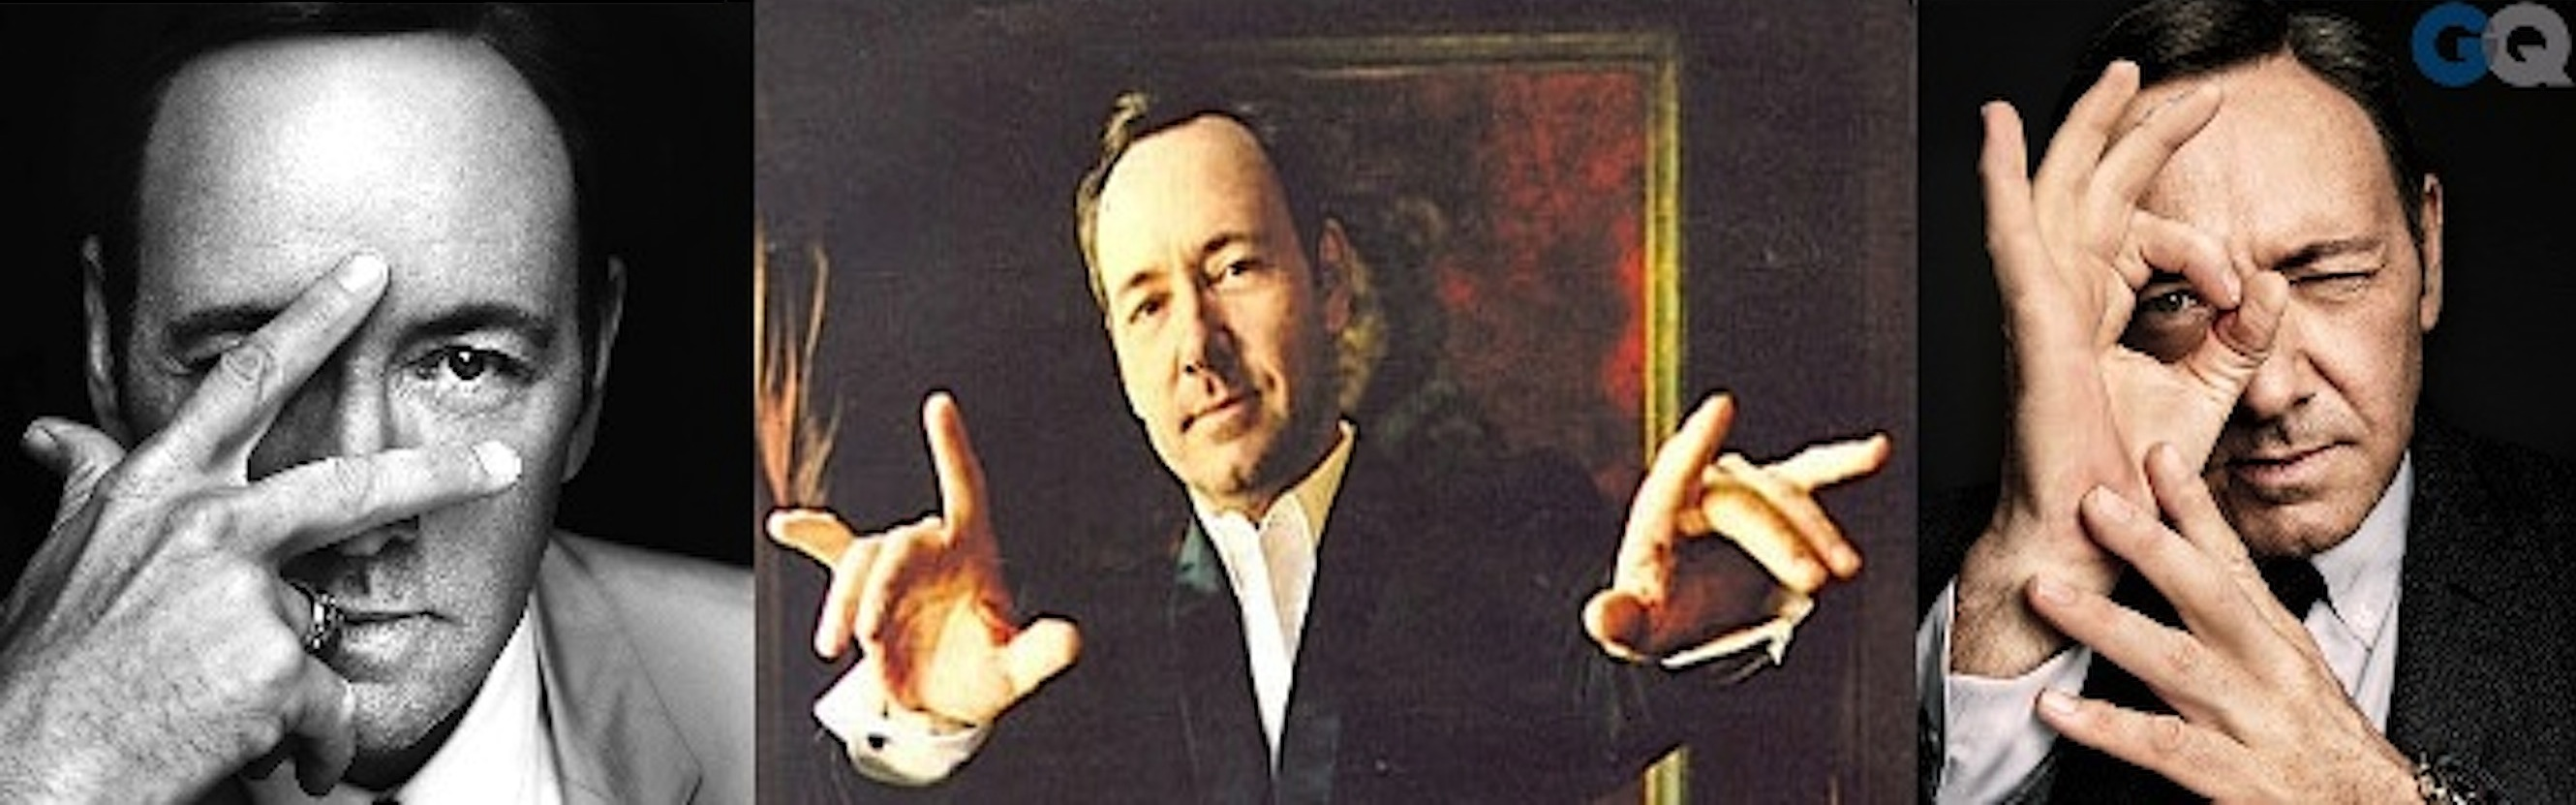 12a-kevin-spacey-series